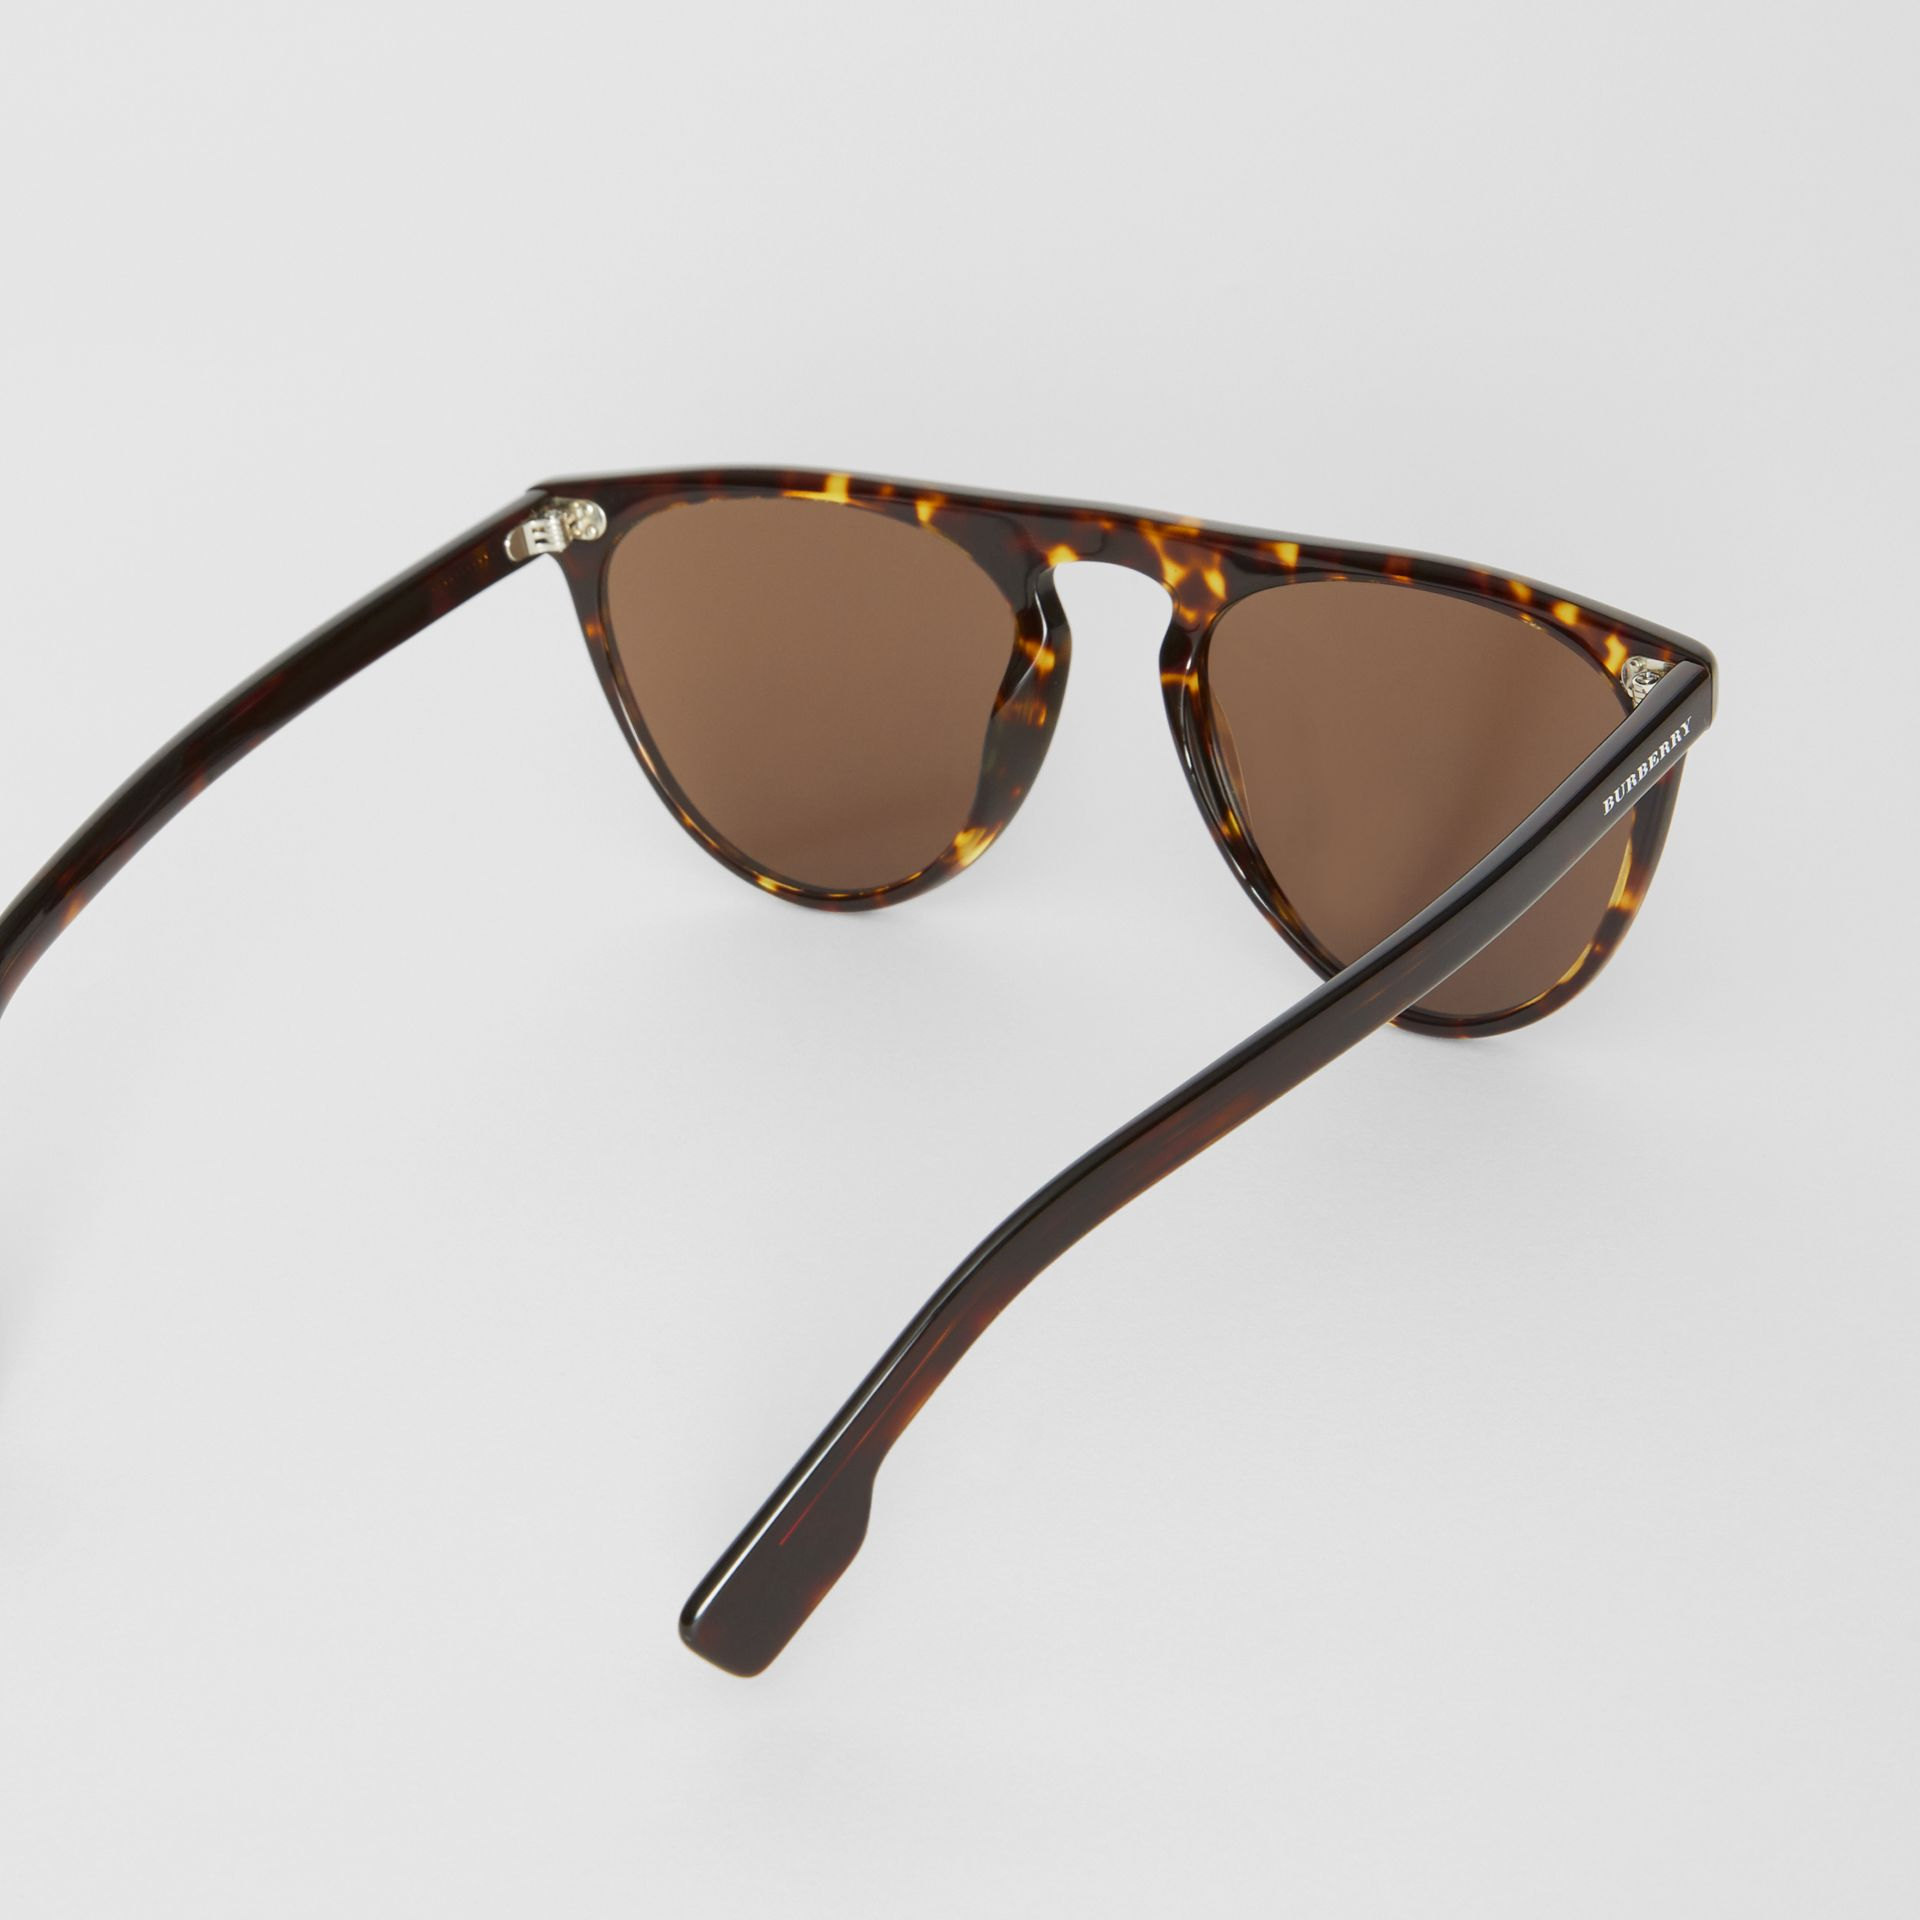 Keyhole D-shaped Sunglasses in Tortoise Shell - Men | Burberry United States - gallery image 4